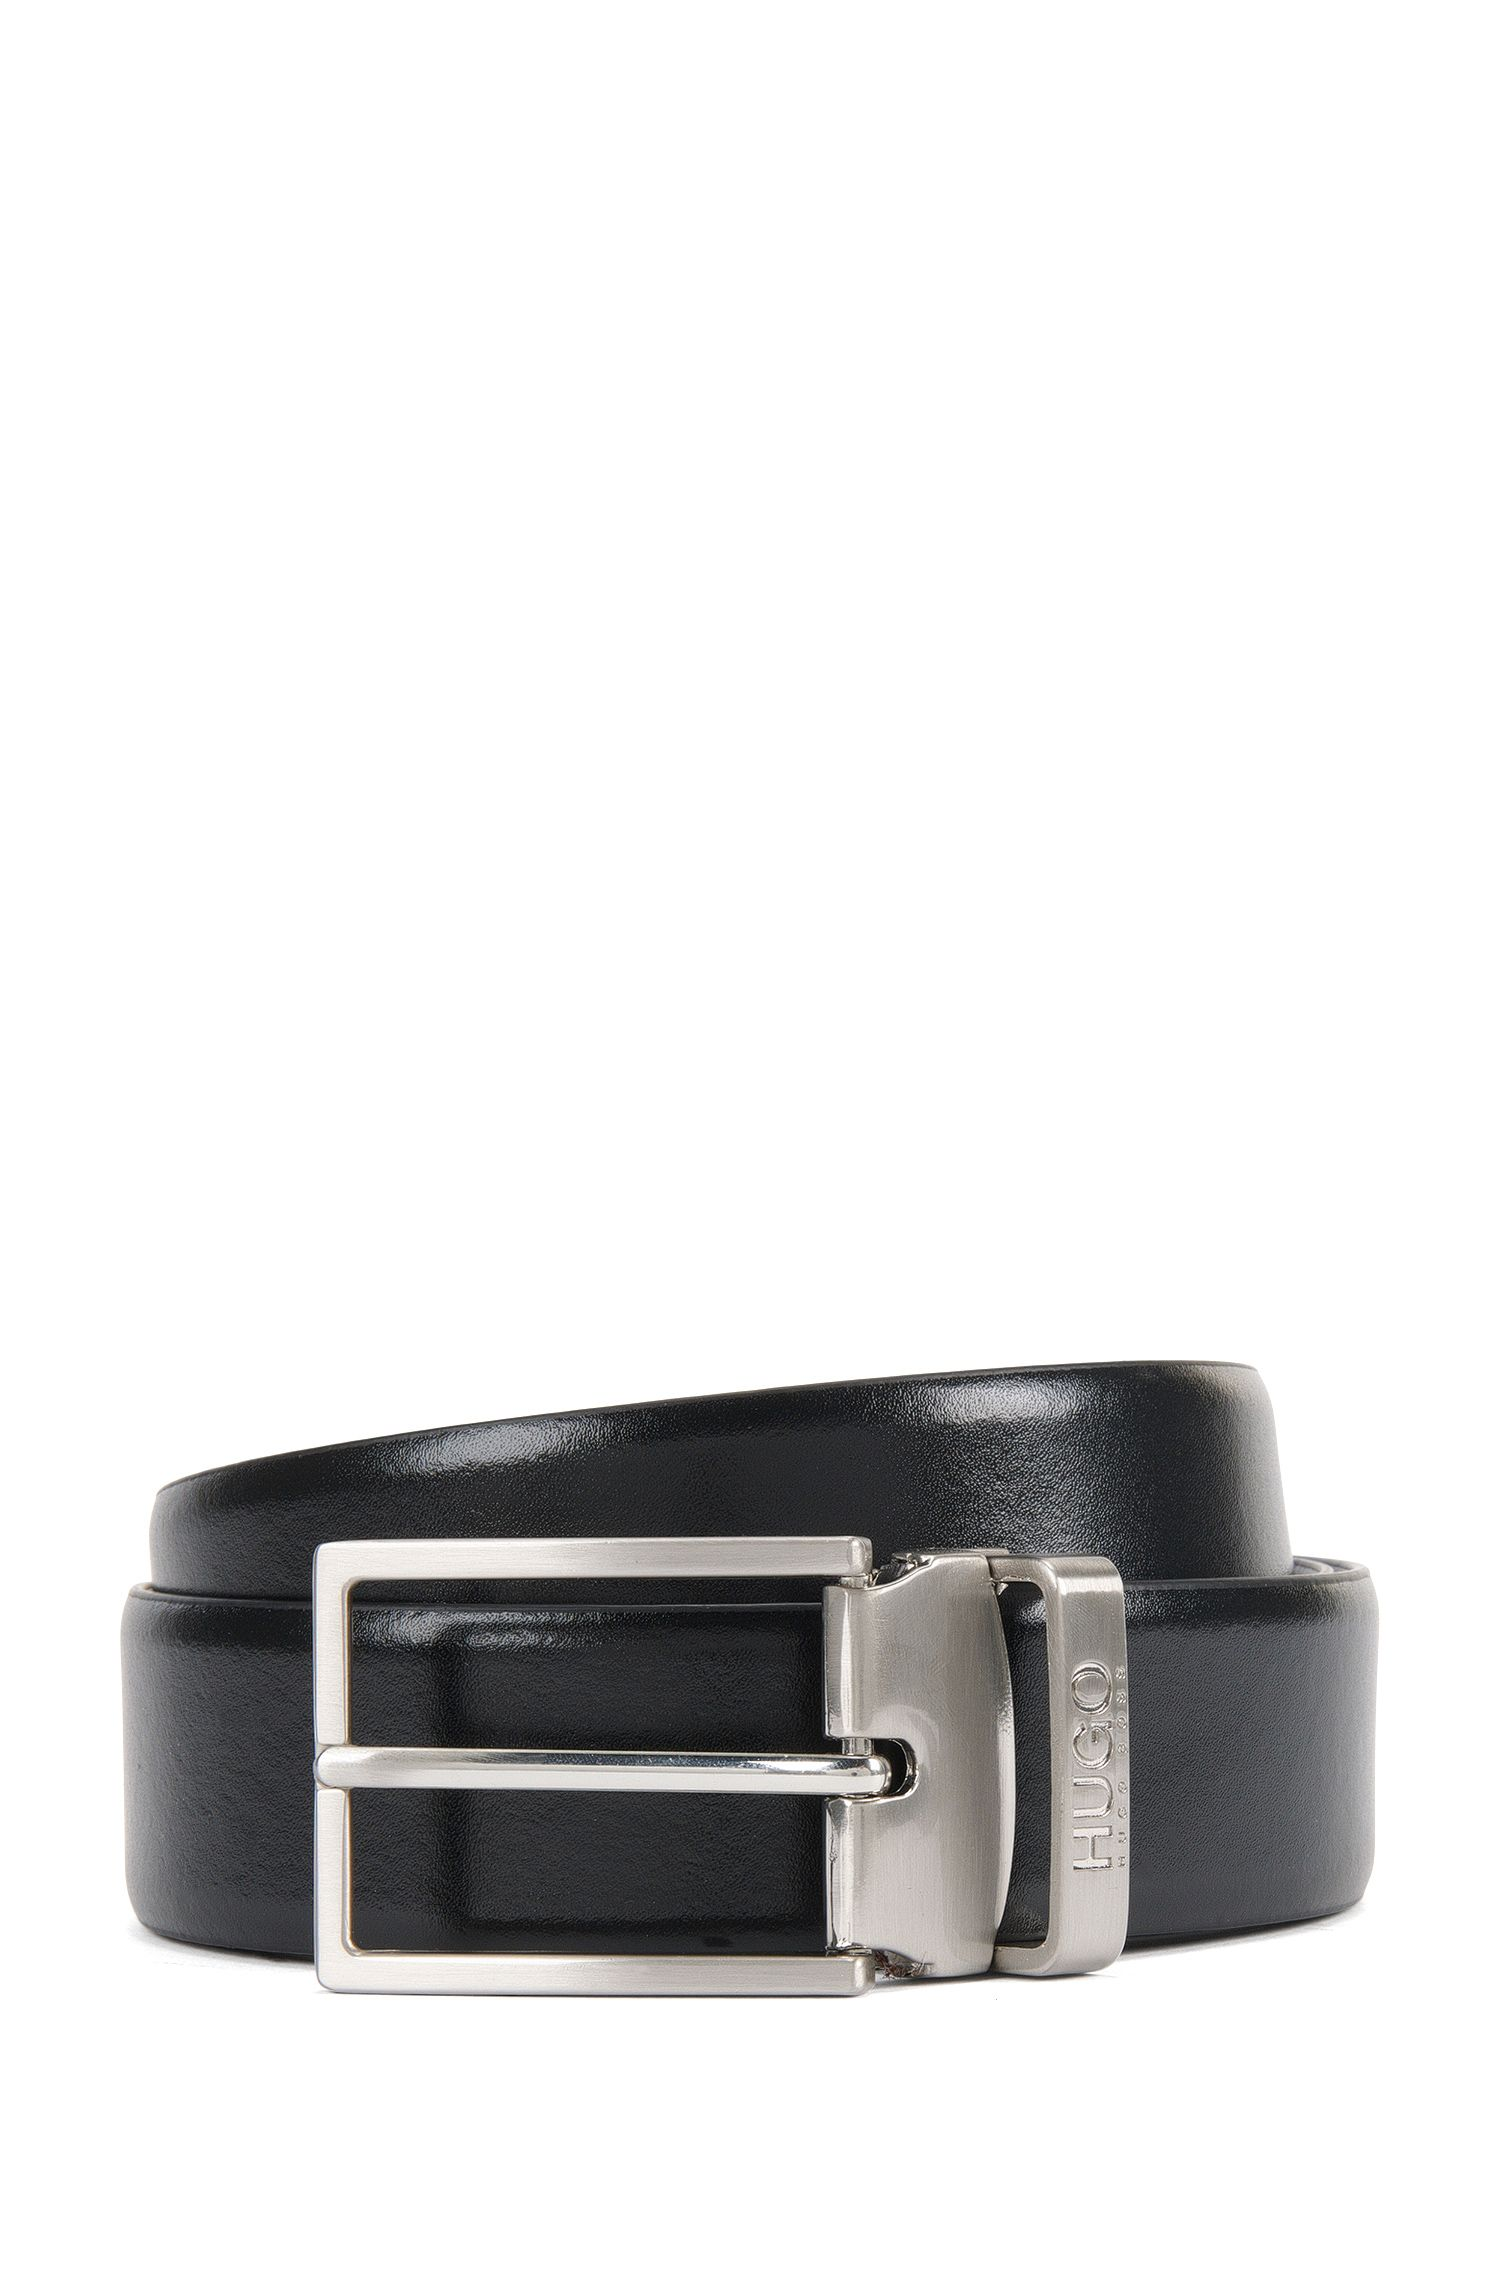 Reversible leather belt with double buckle in brushed metal